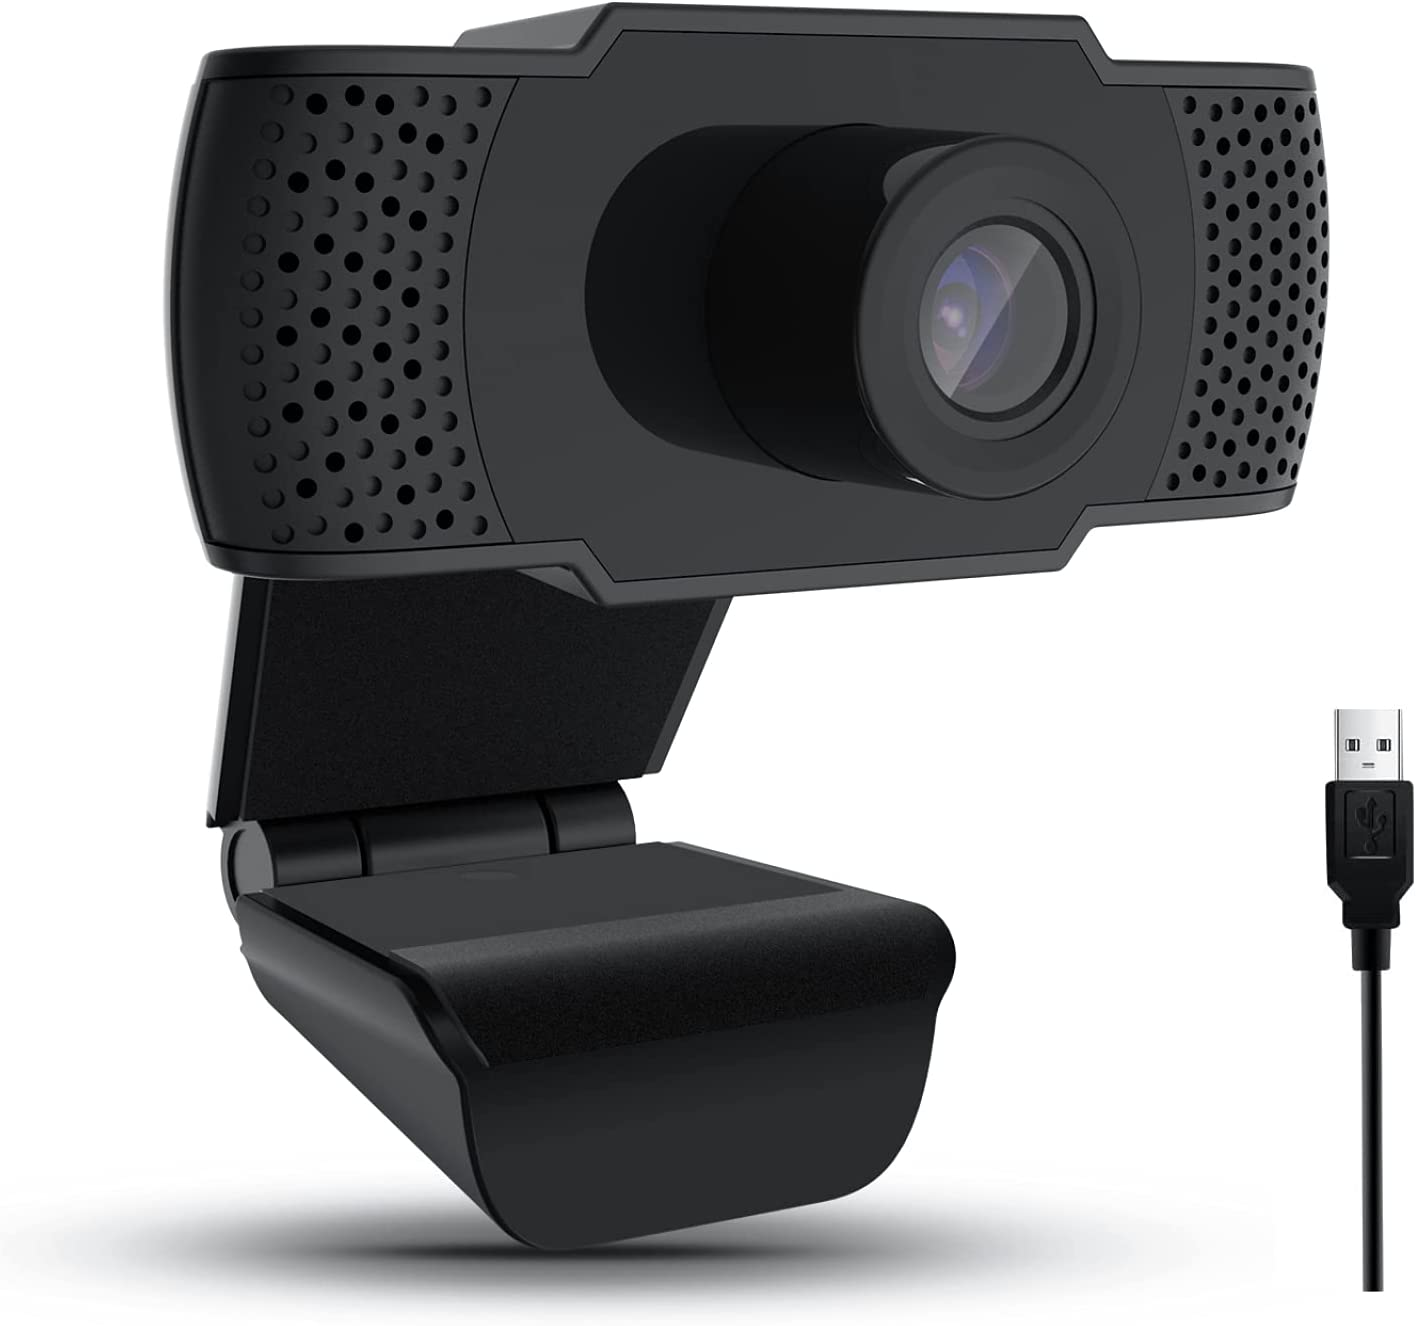 ASDAD The Chicago Mall New HD Max 44% OFF 1080P Webcam with Video Focus Auto Microphone R